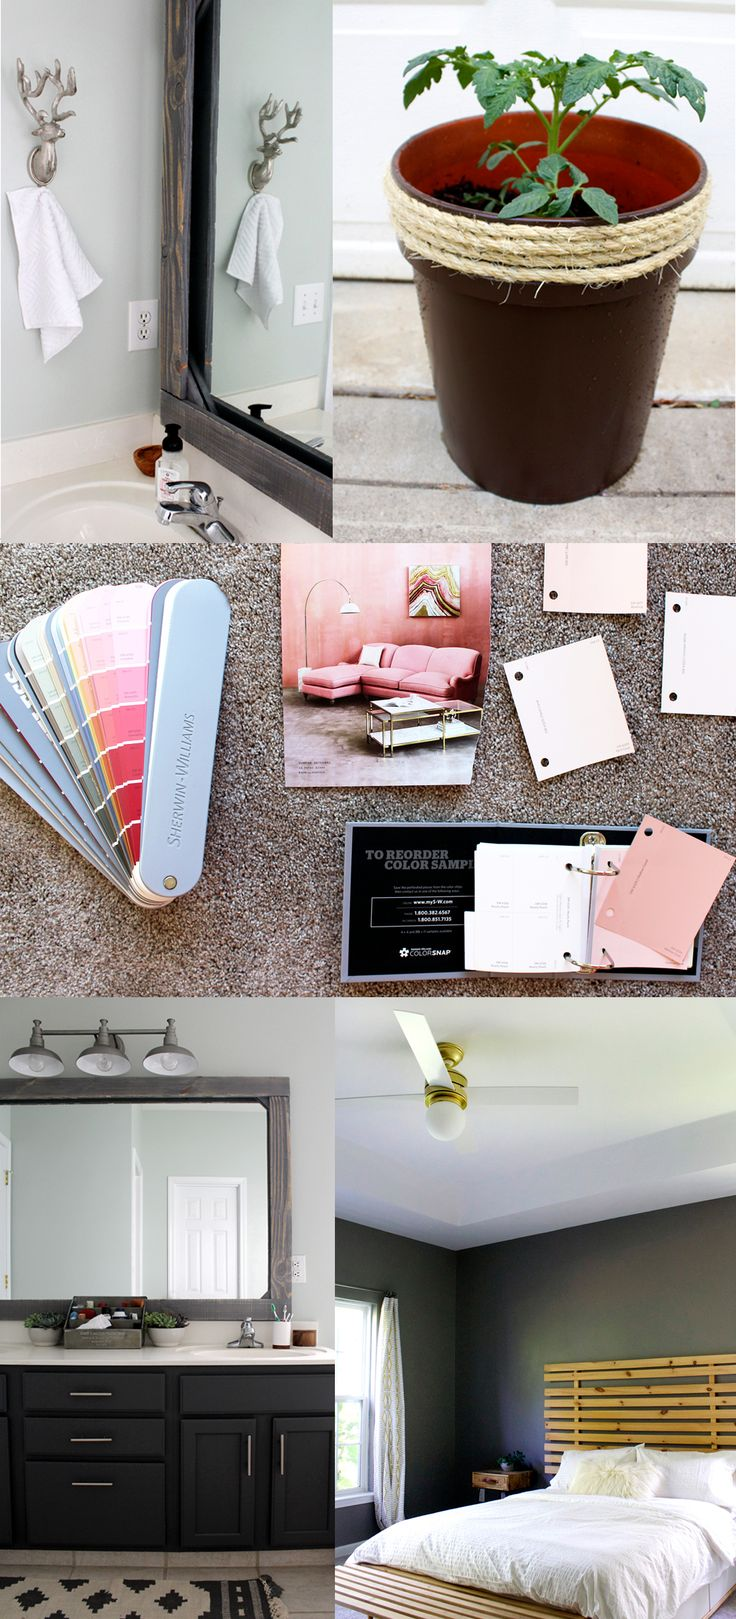 Home decorating diy projects the most popular articles on for Most popular diy crafts